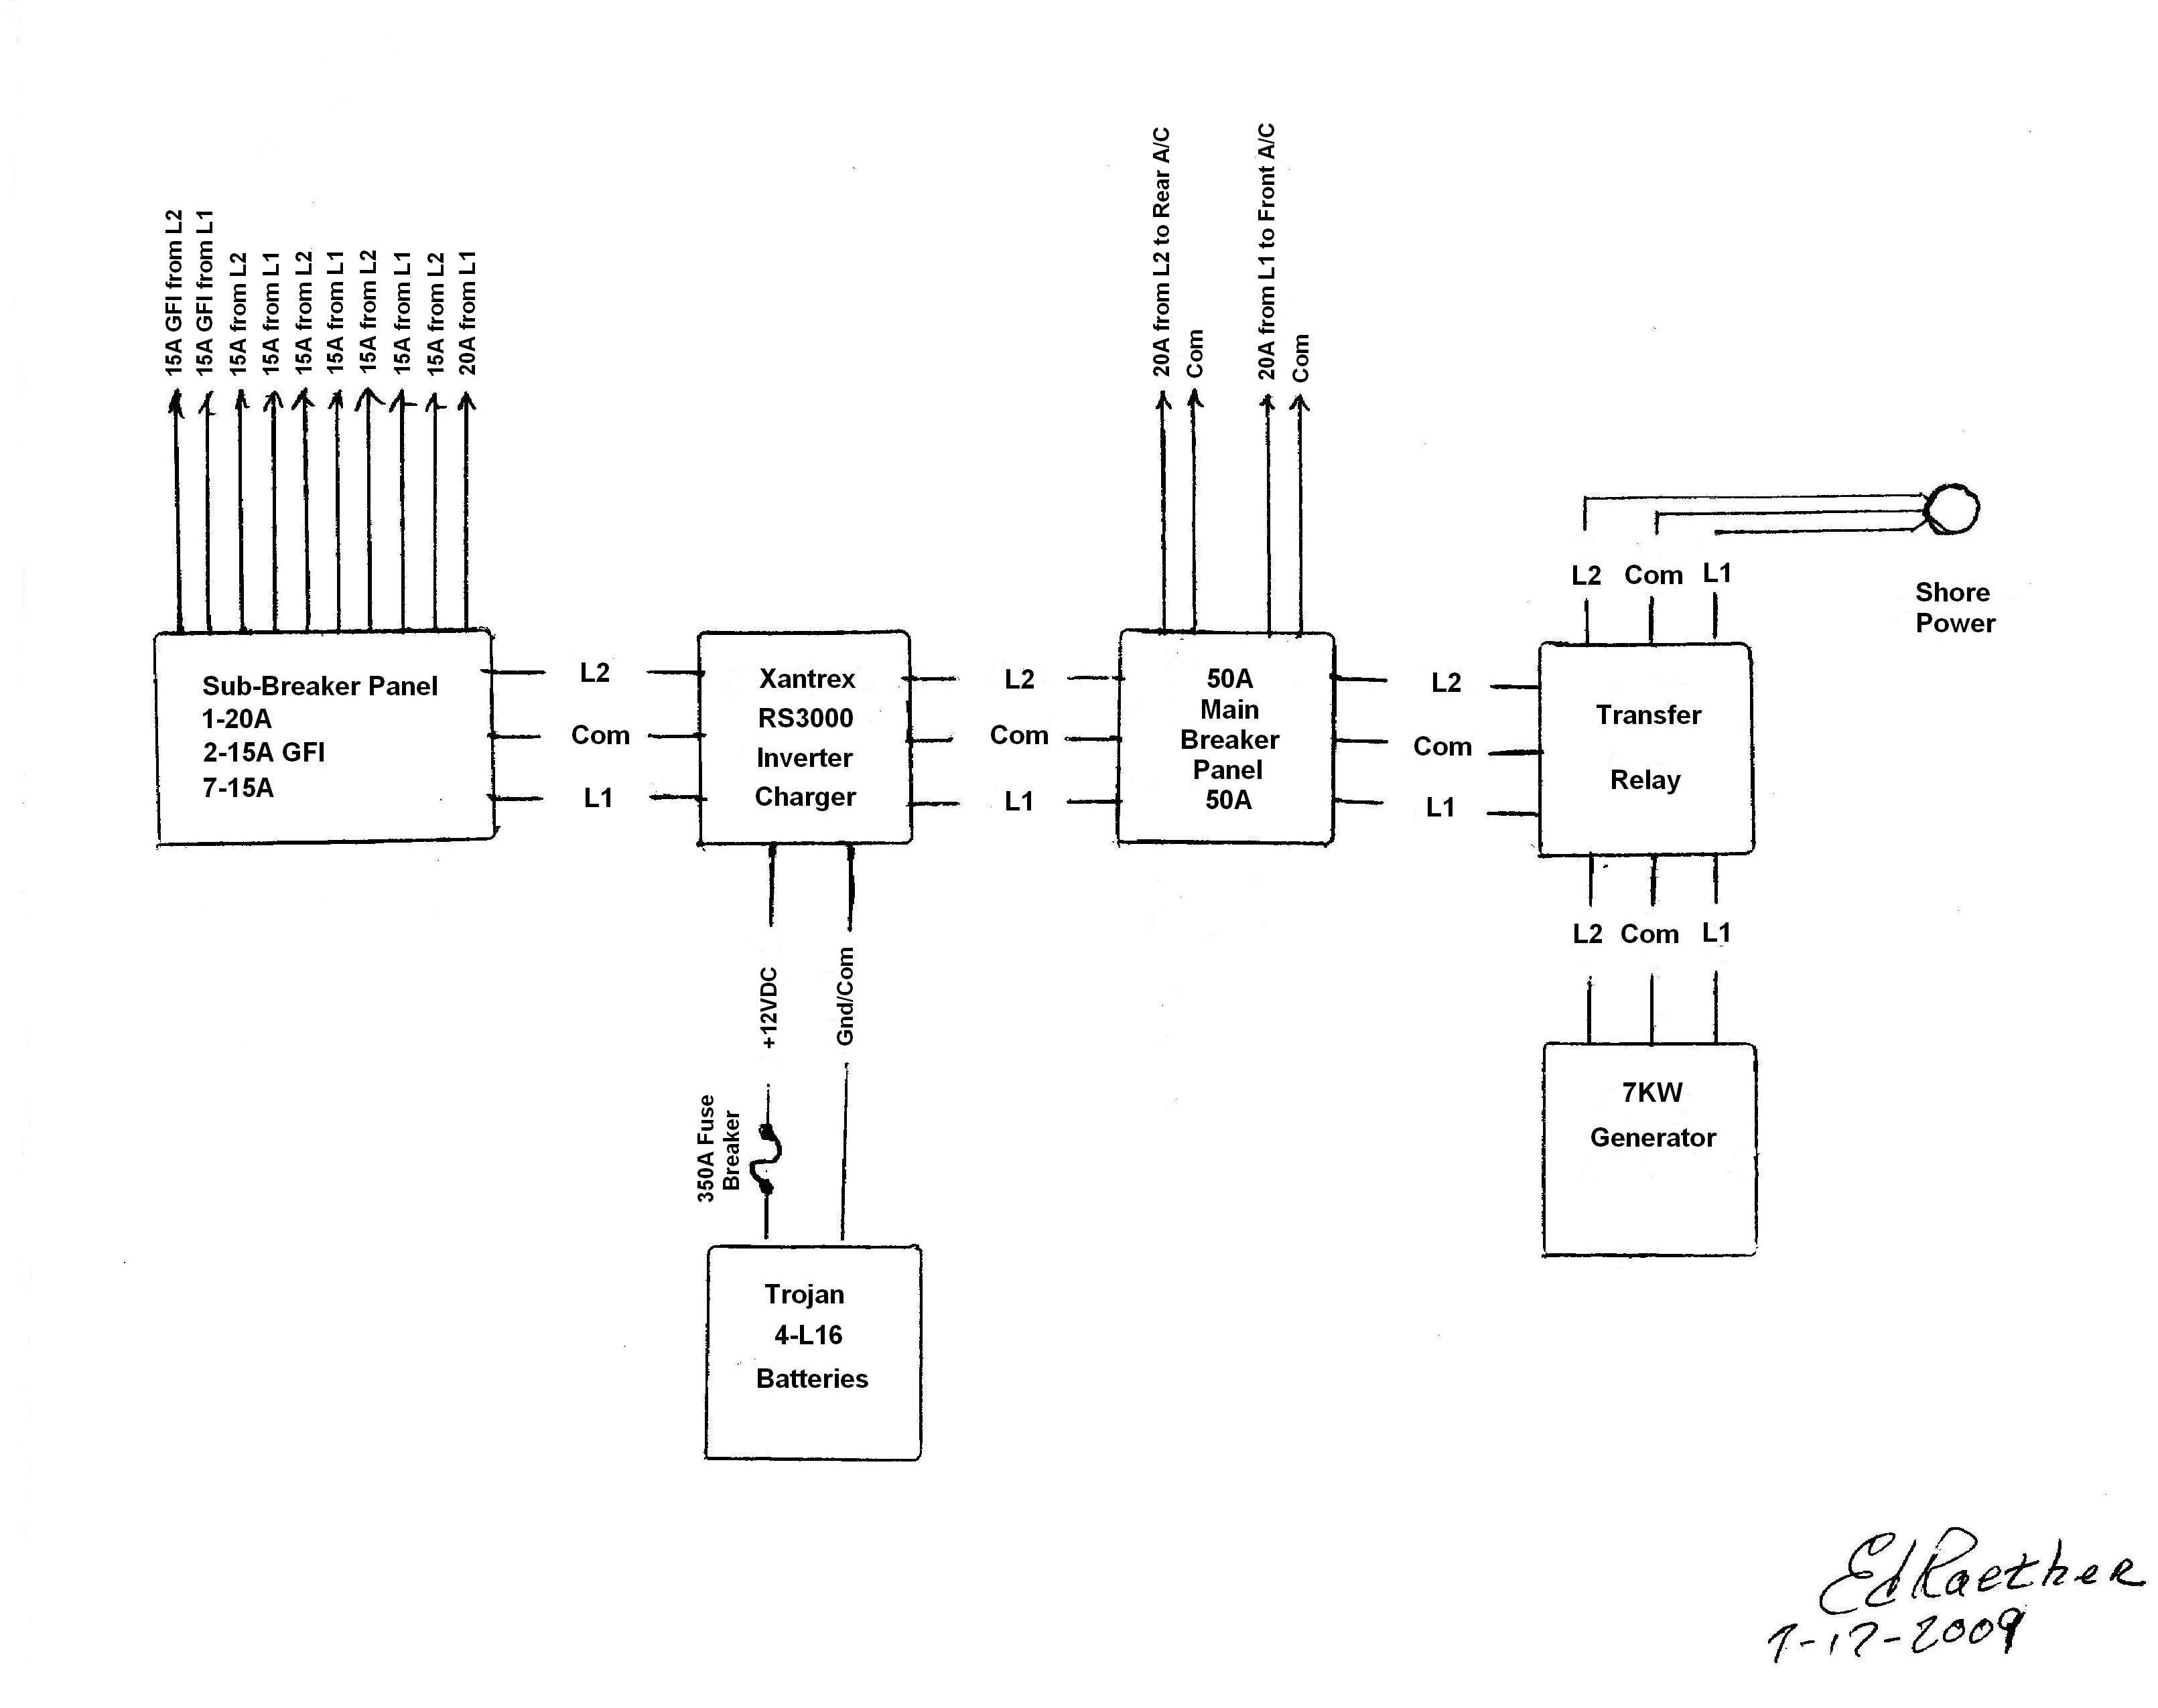 Of The Electrical System Is Powered By A Xantrex Inverter ... Xantrex Wiring Diagram on troubleshooting diagrams, transformer diagrams, series and parallel circuits diagrams, motor diagrams, electrical diagrams, smart car diagrams, switch diagrams, electronic circuit diagrams, lighting diagrams, battery diagrams, honda motorcycle repair diagrams, pinout diagrams, hvac diagrams, engine diagrams, gmc fuse box diagrams, led circuit diagrams, sincgars radio configurations diagrams, friendship bracelet diagrams, internet of things diagrams,